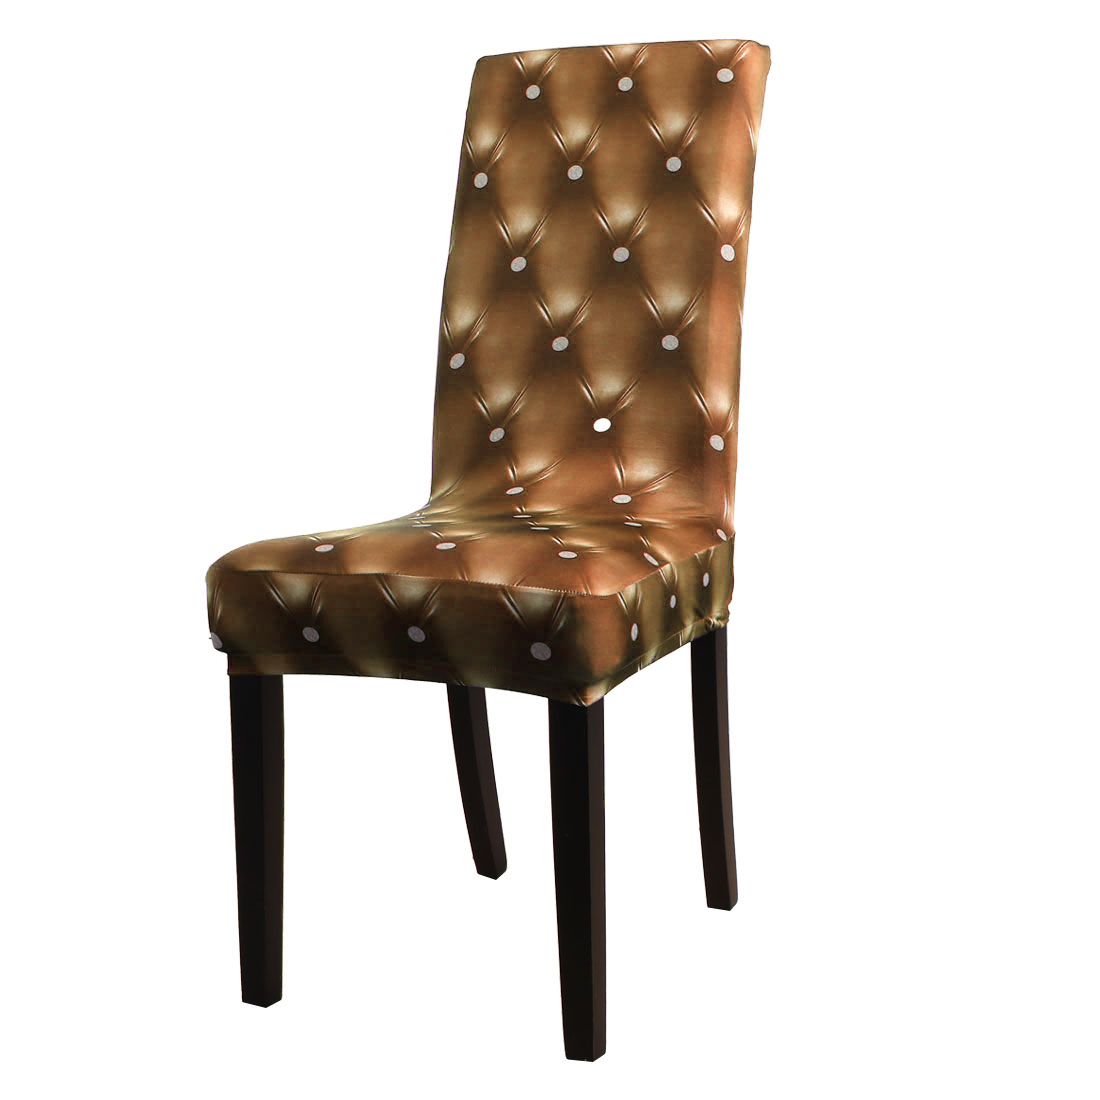 3D Pattern Spandex Stretch Short Chair Seat Covers Dining Chair Slipcovers by Unique Bargins